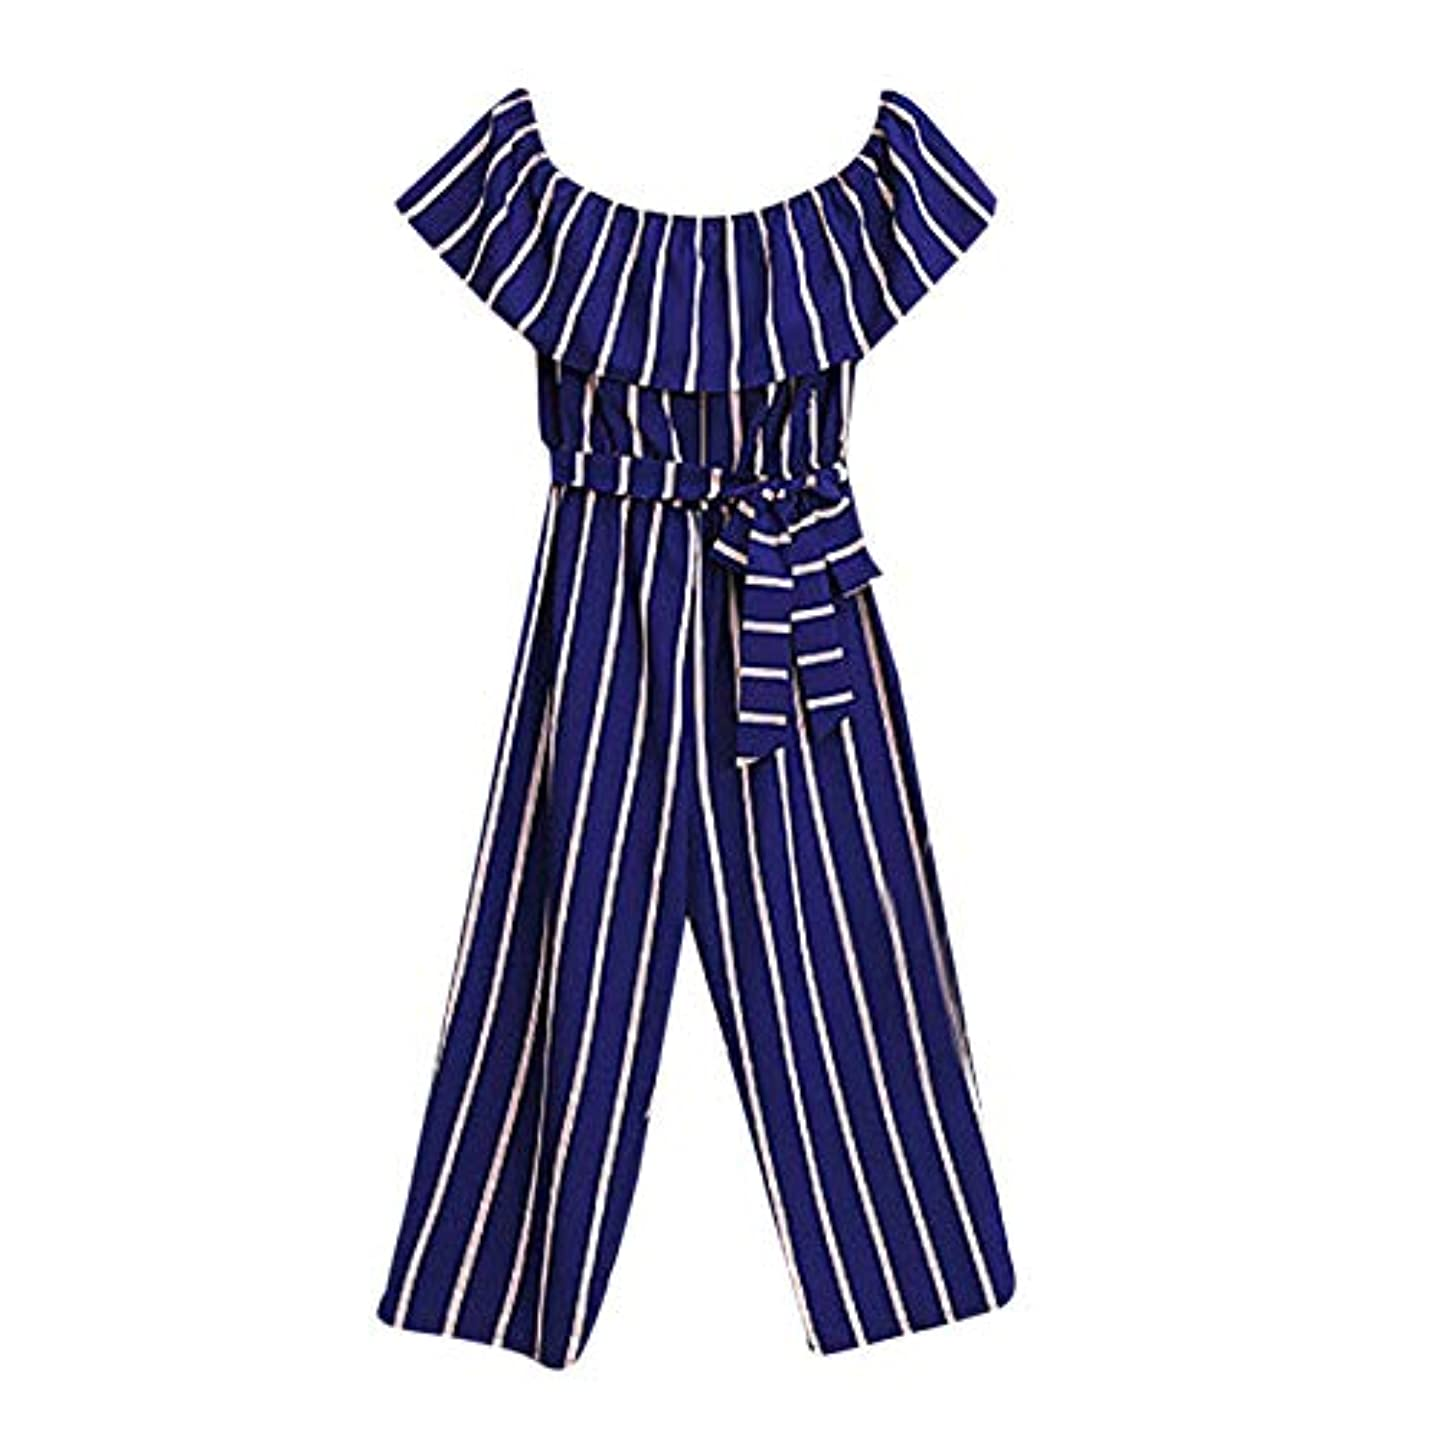 QBQCBB Mommy&Me Family Women Ruffled Off Shoulder Striped Print One-Piece Jumpsuit